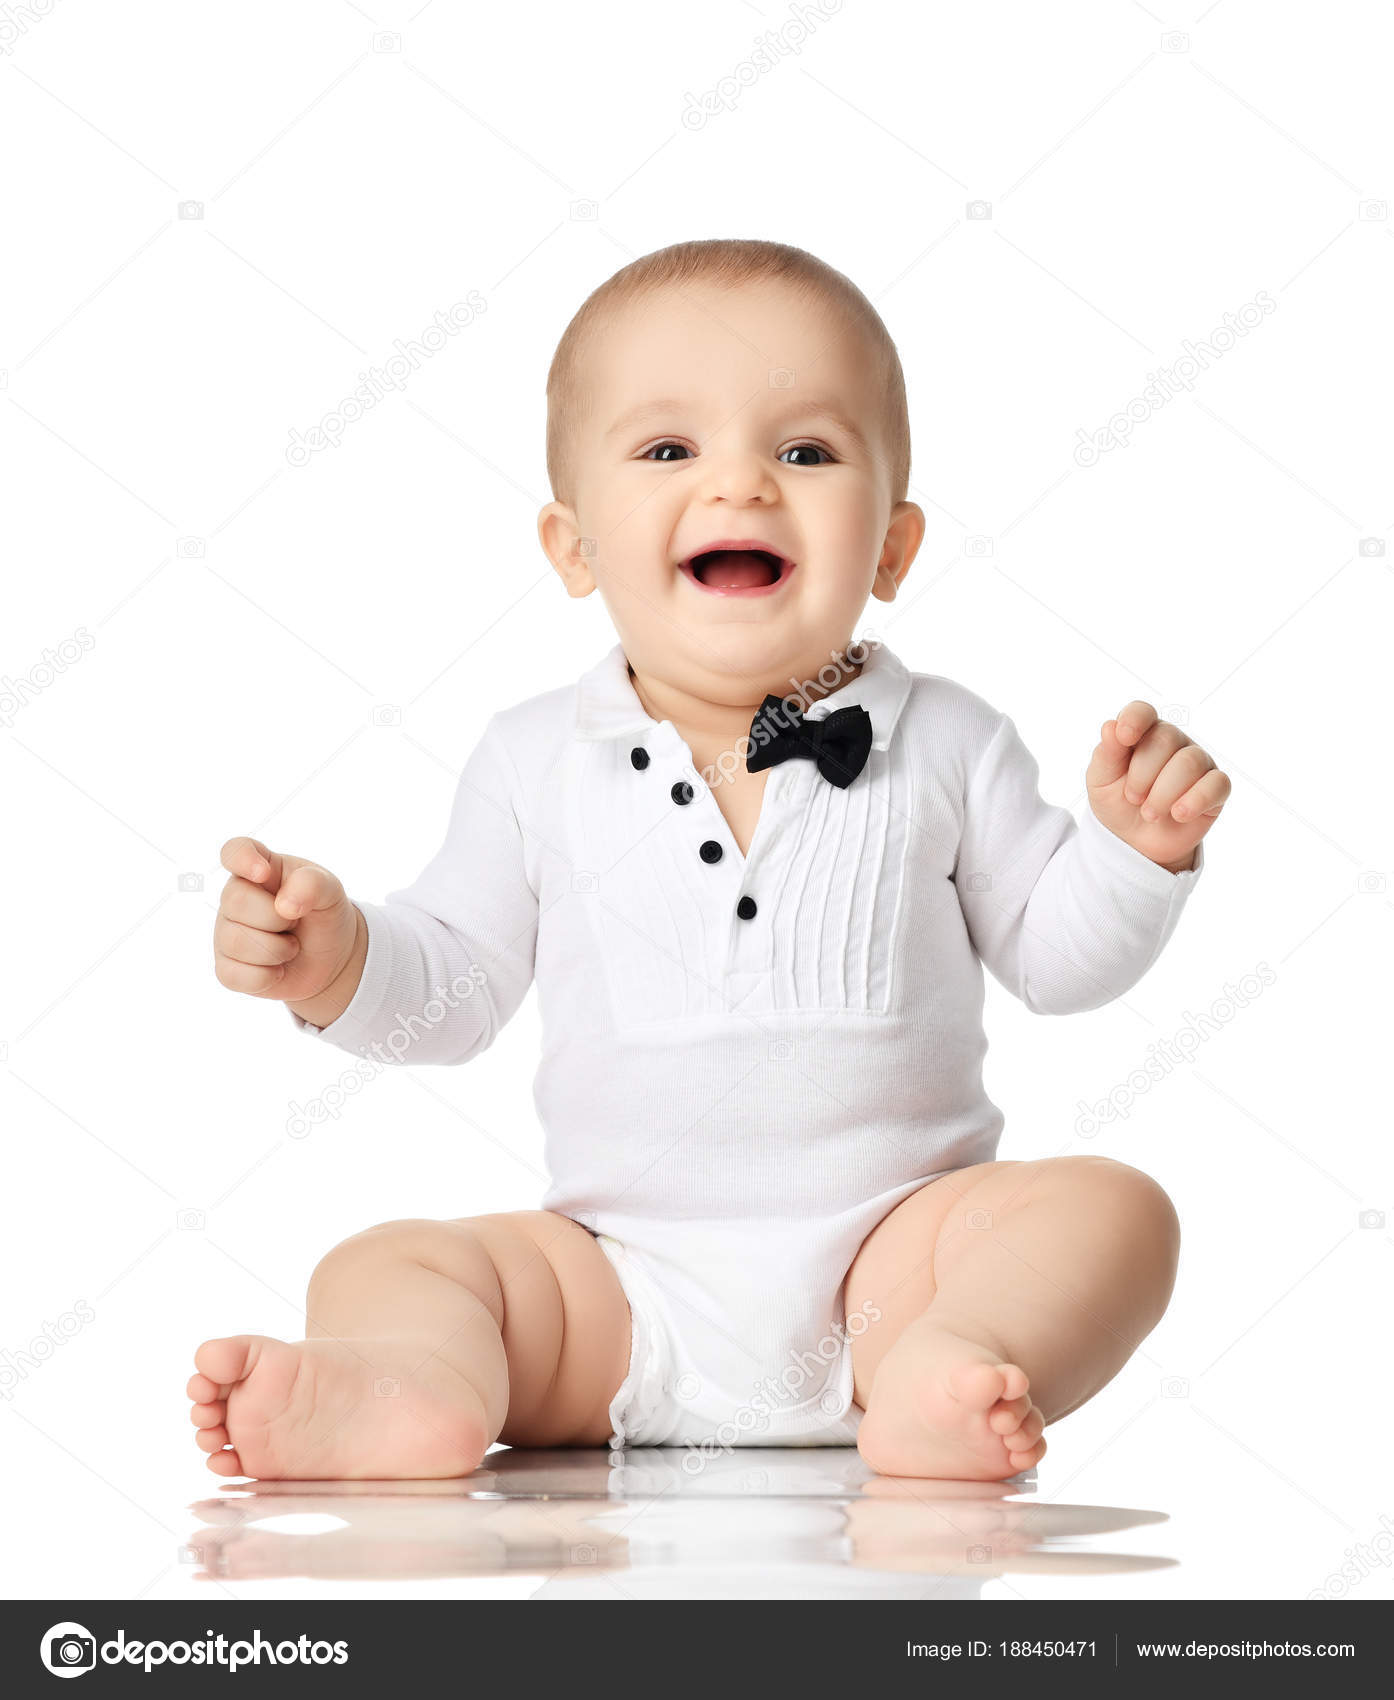 68d36c608 8 month infant child baby boy toddler sitting in white shirt and ...